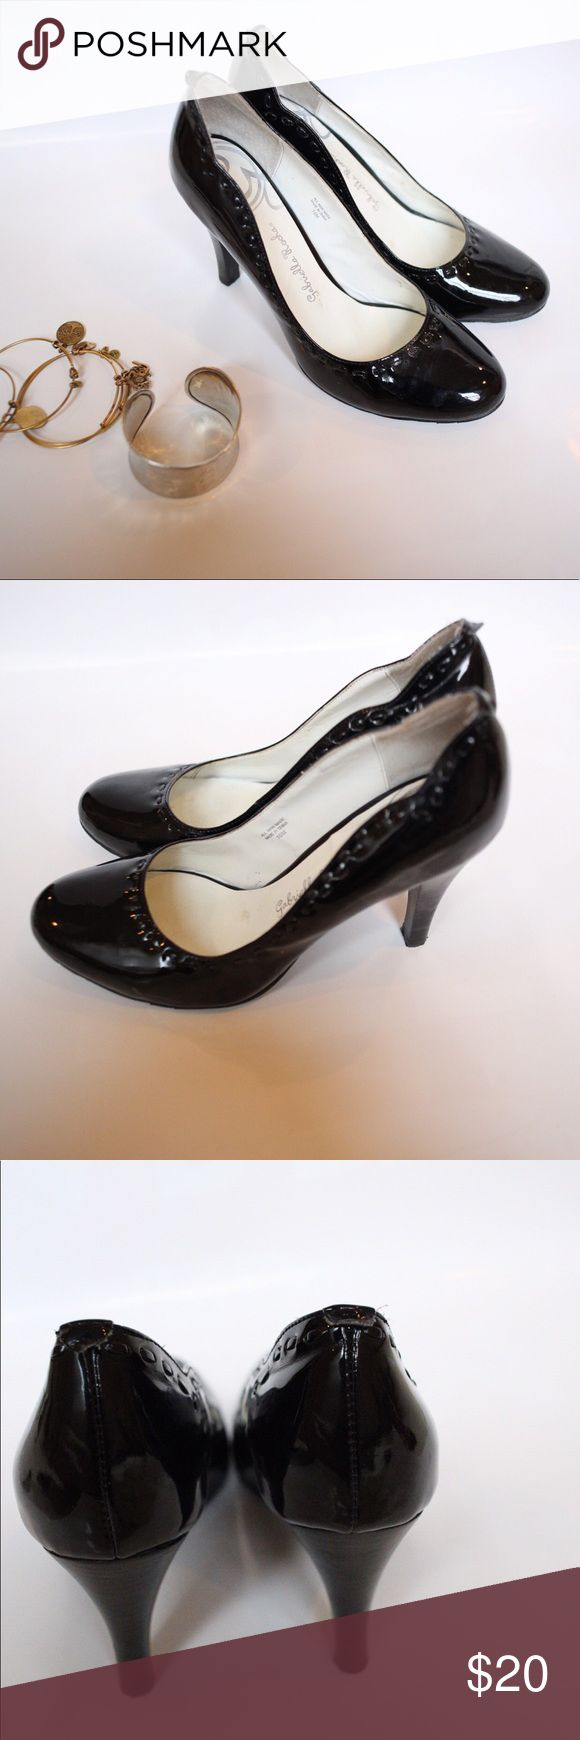 Gabriella Rocha Black Pumps Traditional shiny black pumps with stitching perfect for dressing up an outfit Gabriella Rocha Shoes Heels